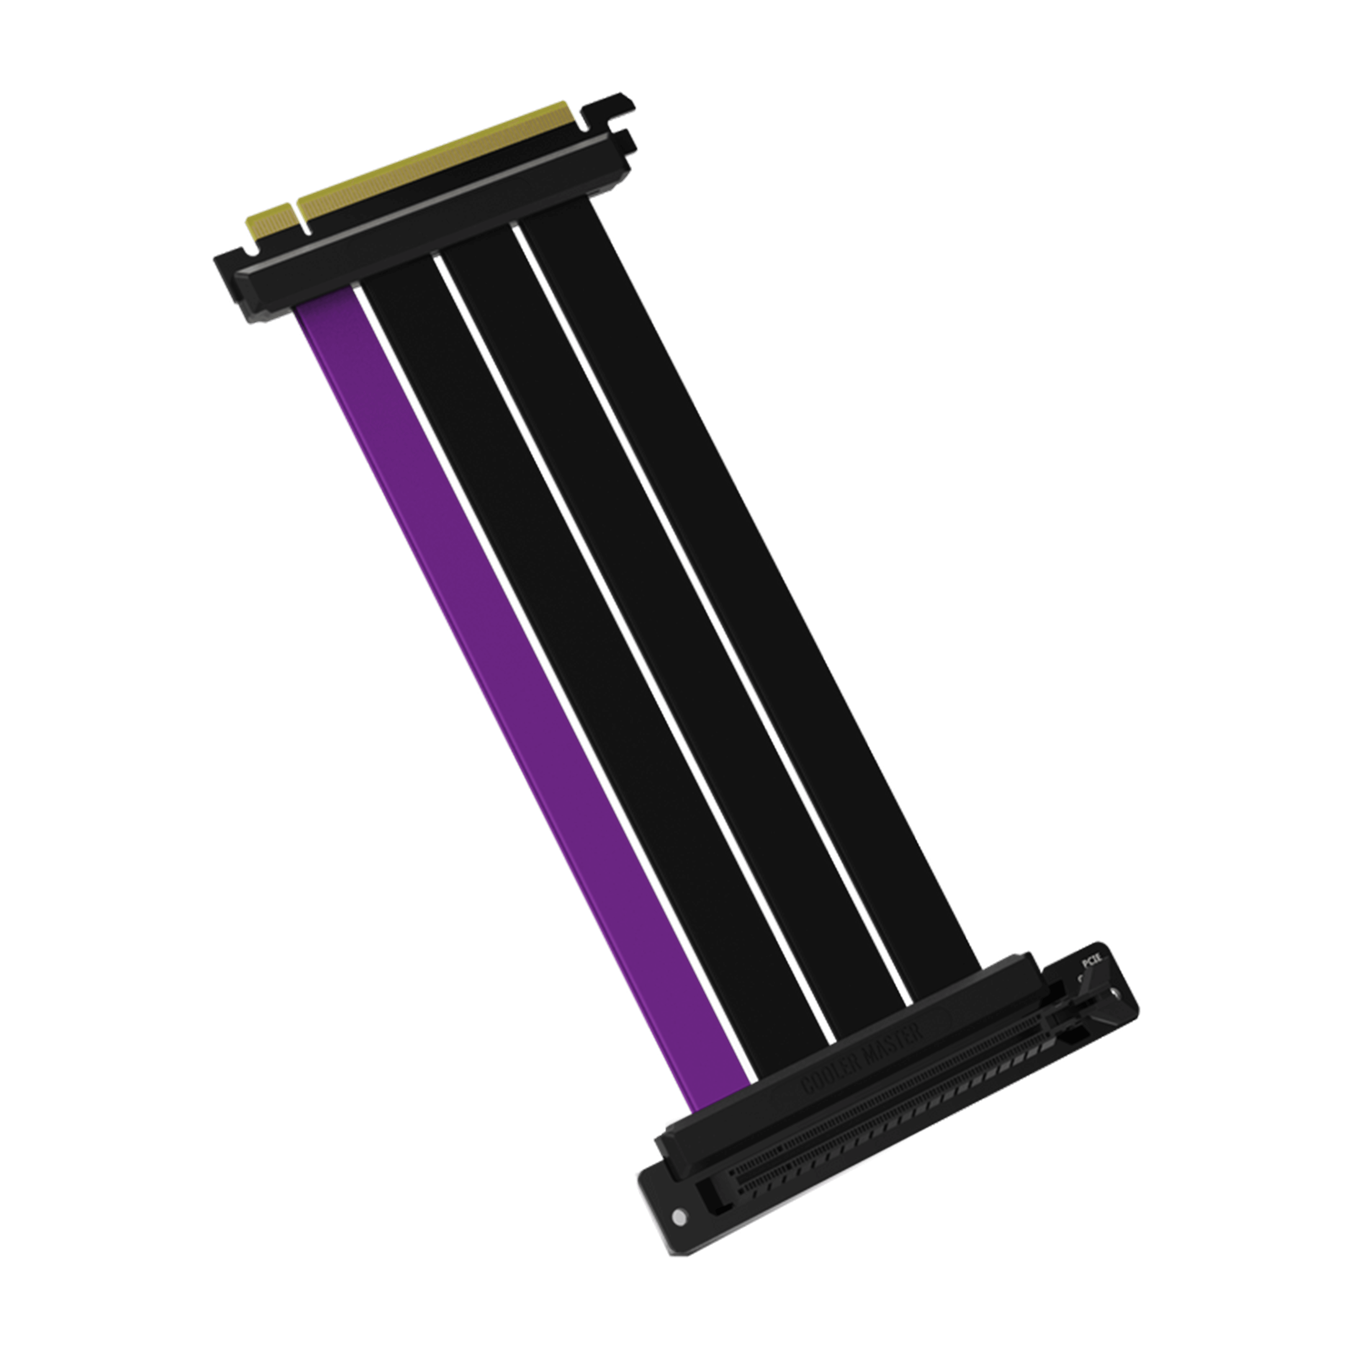 The included 165mm PCIe 4.0 Riser Cable with three matte black cables and a single purple accent cable.